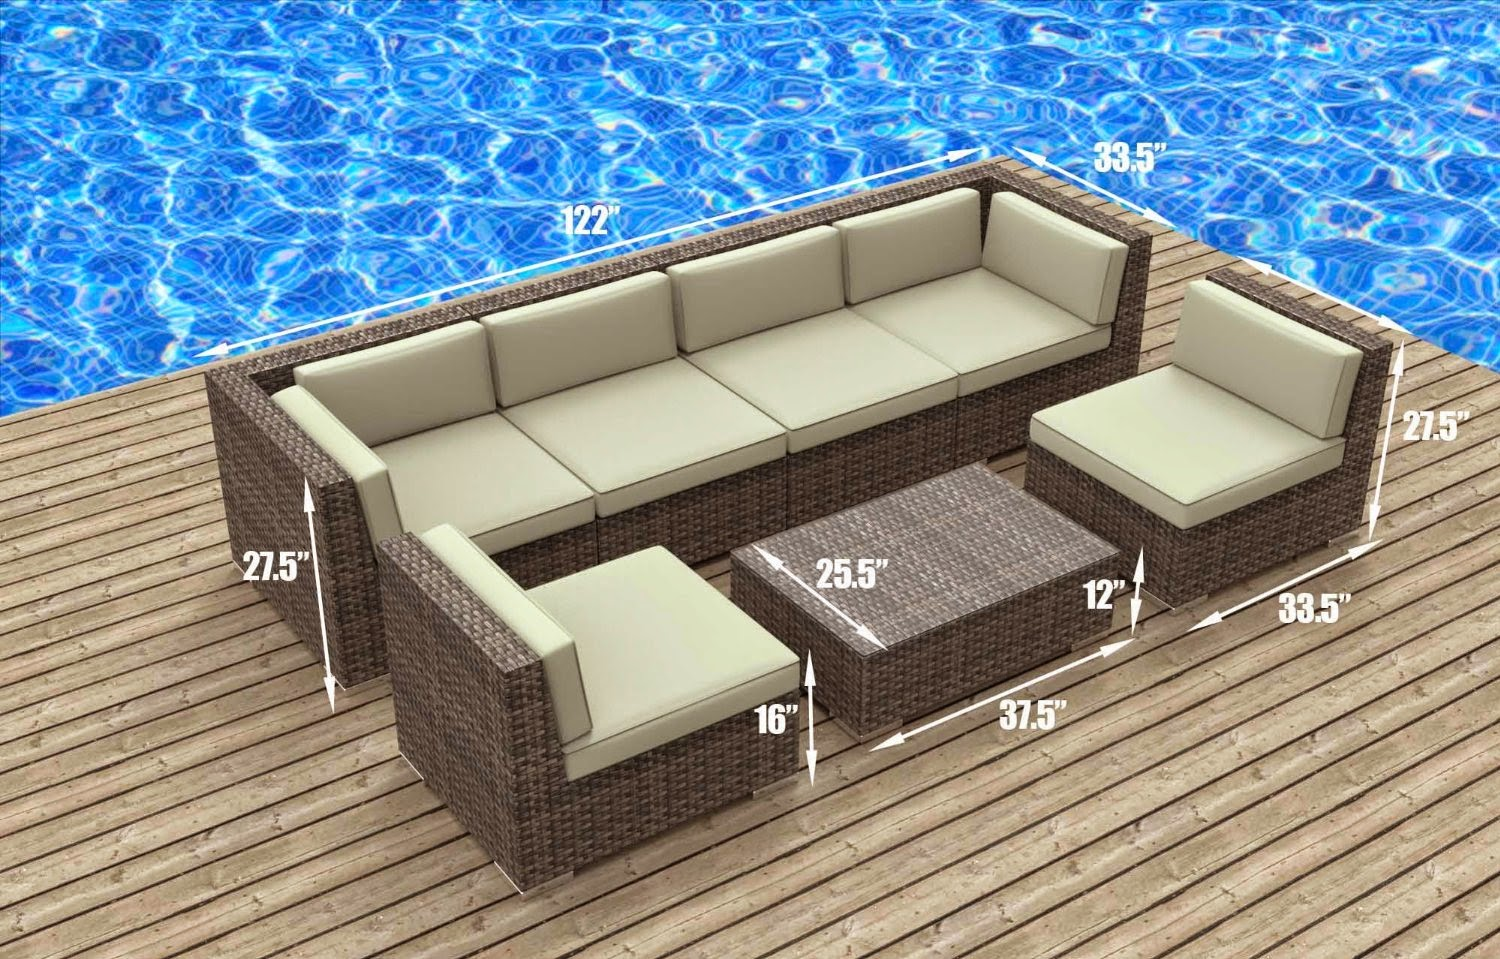 Urban furnishing modern outdoor backyard wicker rattan for I furniture outdoor furniture